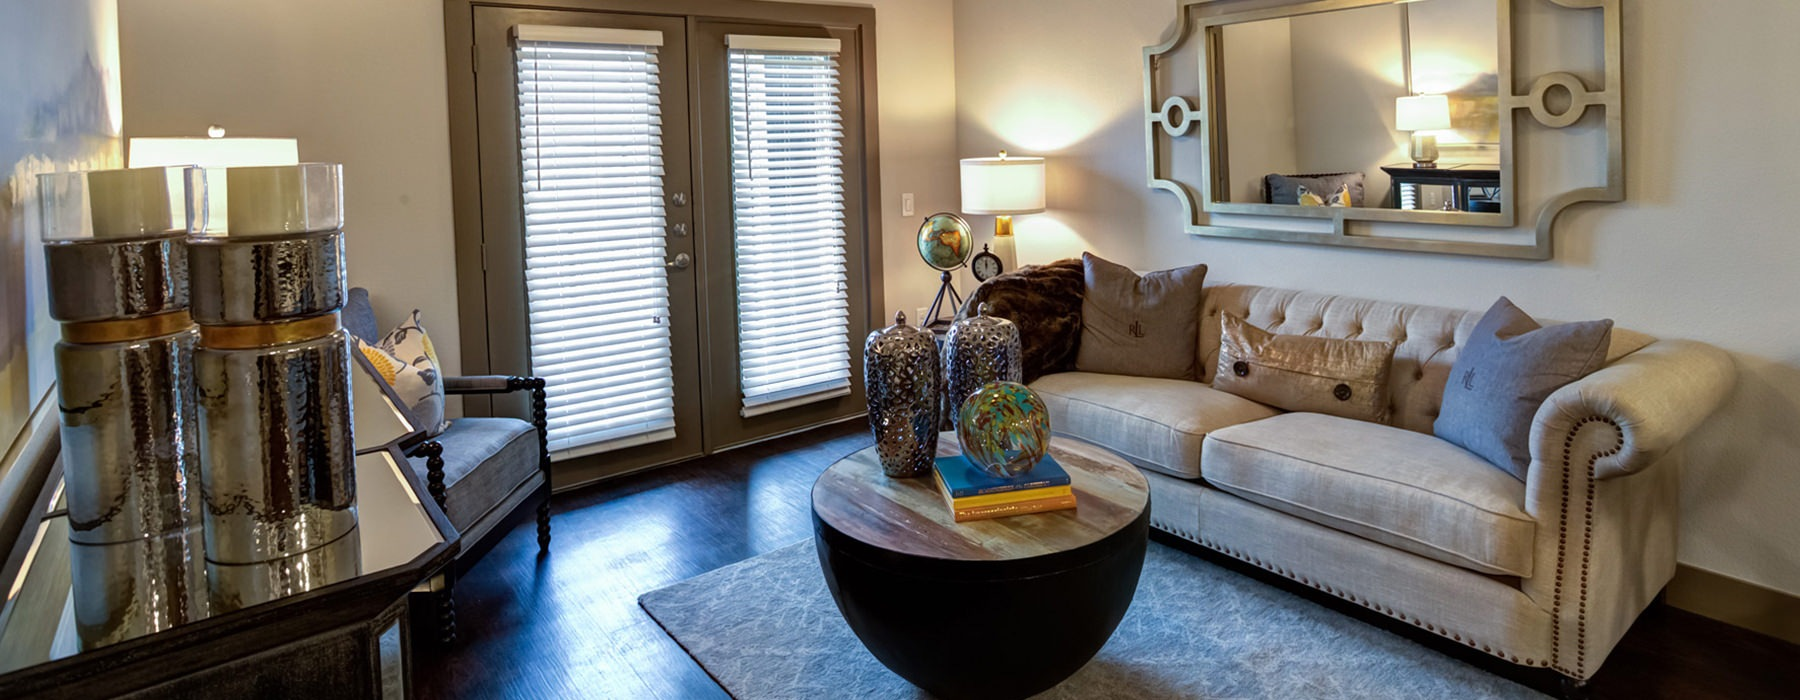 living room with wood floors, comfortable seating and doors that lead to a patio